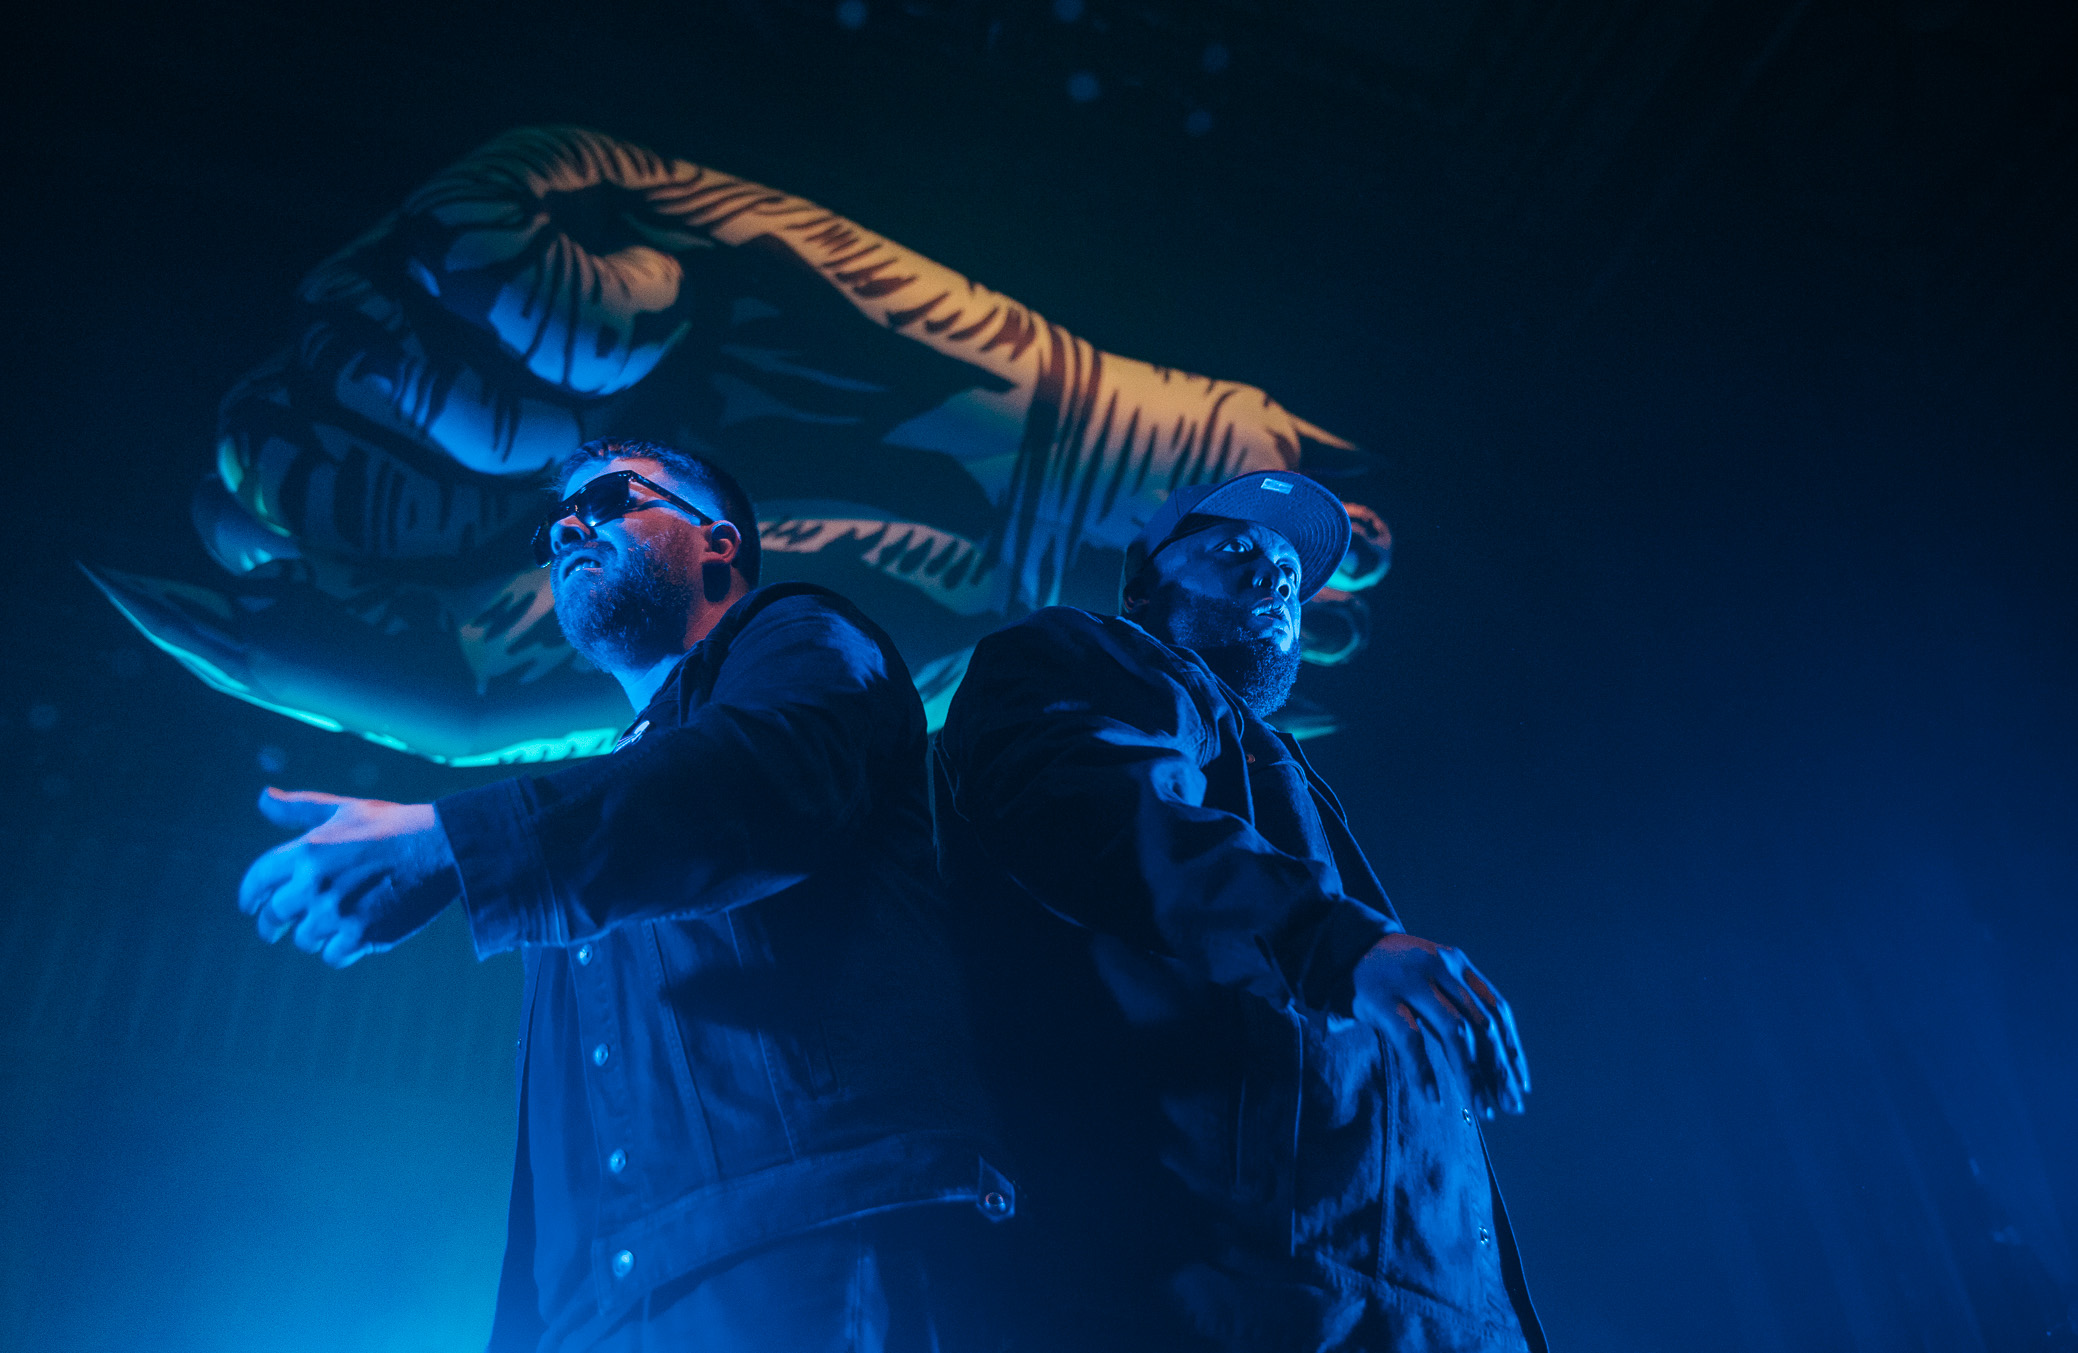 Run The Jewels perform at The Tabernacle in Atlanta, Georgia on January 21st, 2017. (Photo by David A. Smith/DSmithScenes)